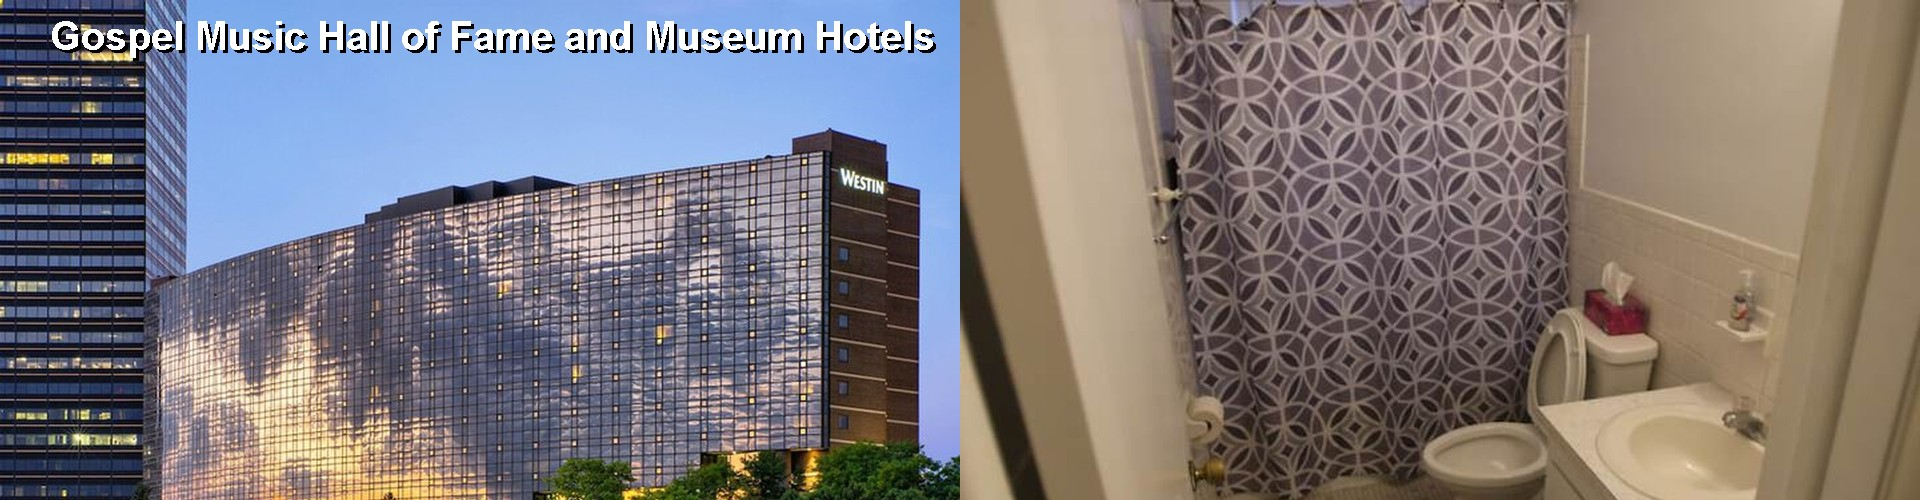 5 Best Hotels near Gospel Music Hall of Fame and Museum